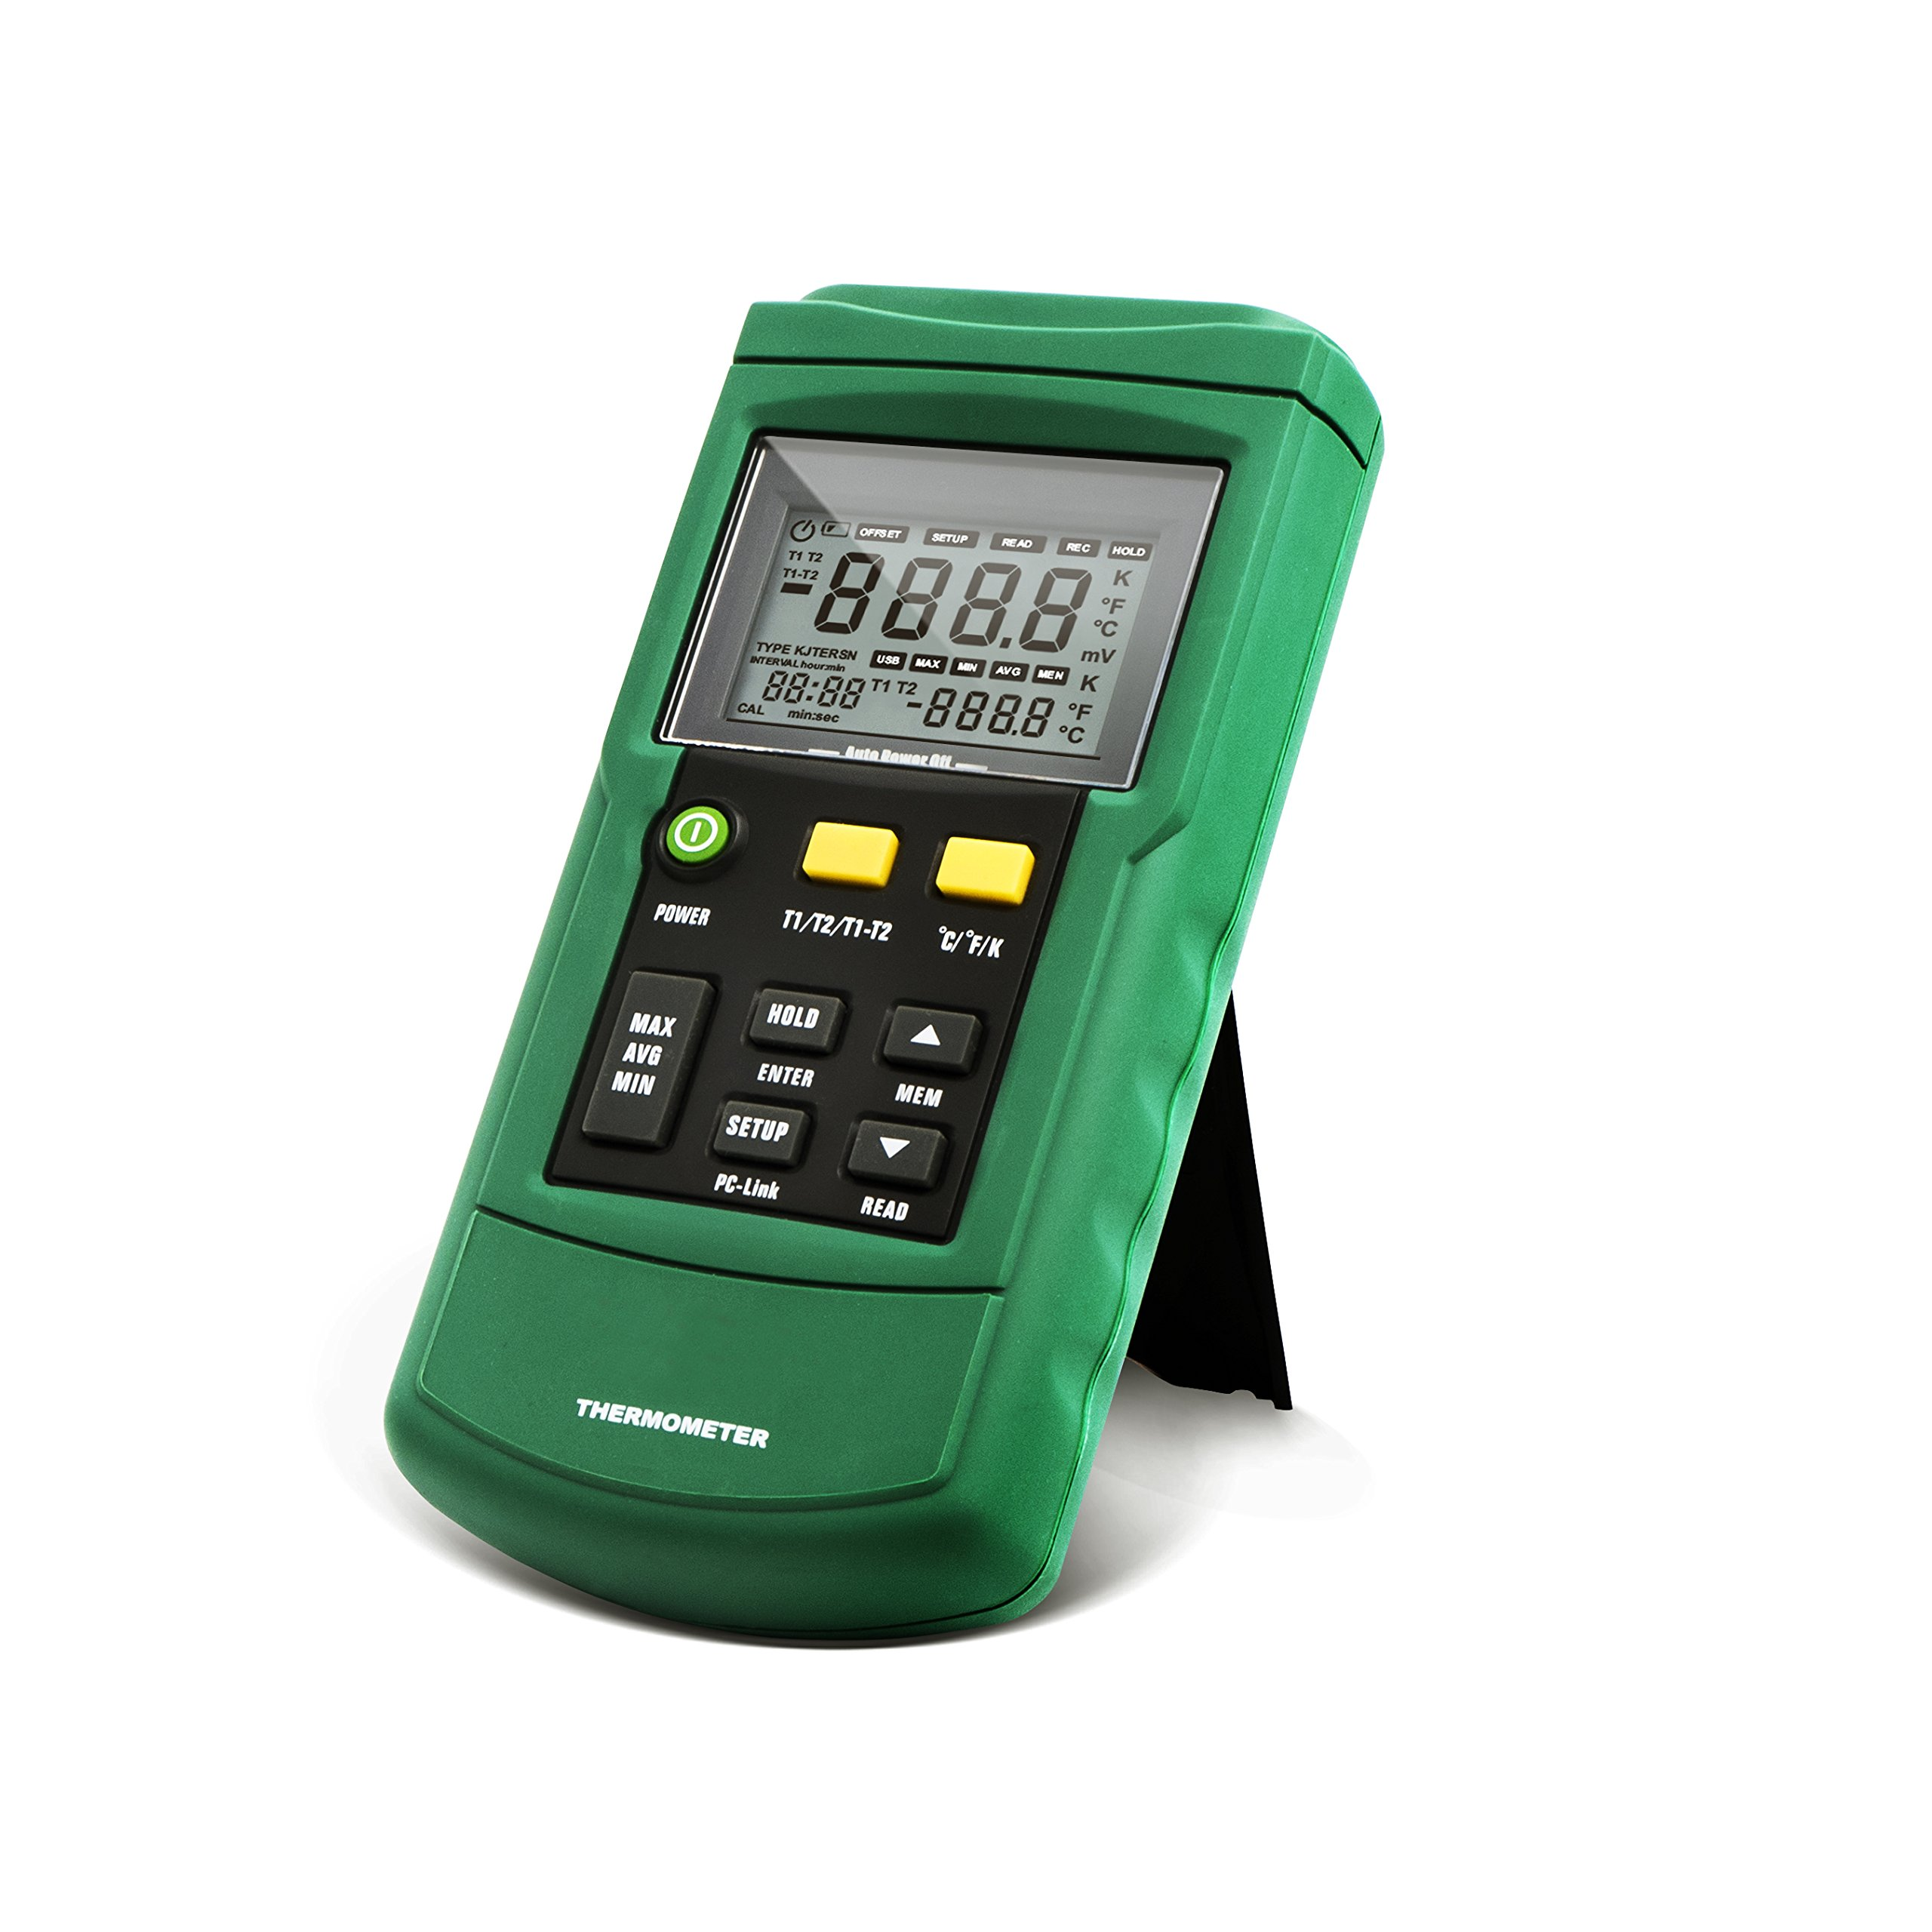 Perfect-Prime TC2100, 2-Channel Digital Thermocouple Thermometer/Sensor USB Datalog J/K/T/E/R/S/N Type,PC Software for up to MS-Windows Win10, Temperature Range -418.0°F to +3212°F